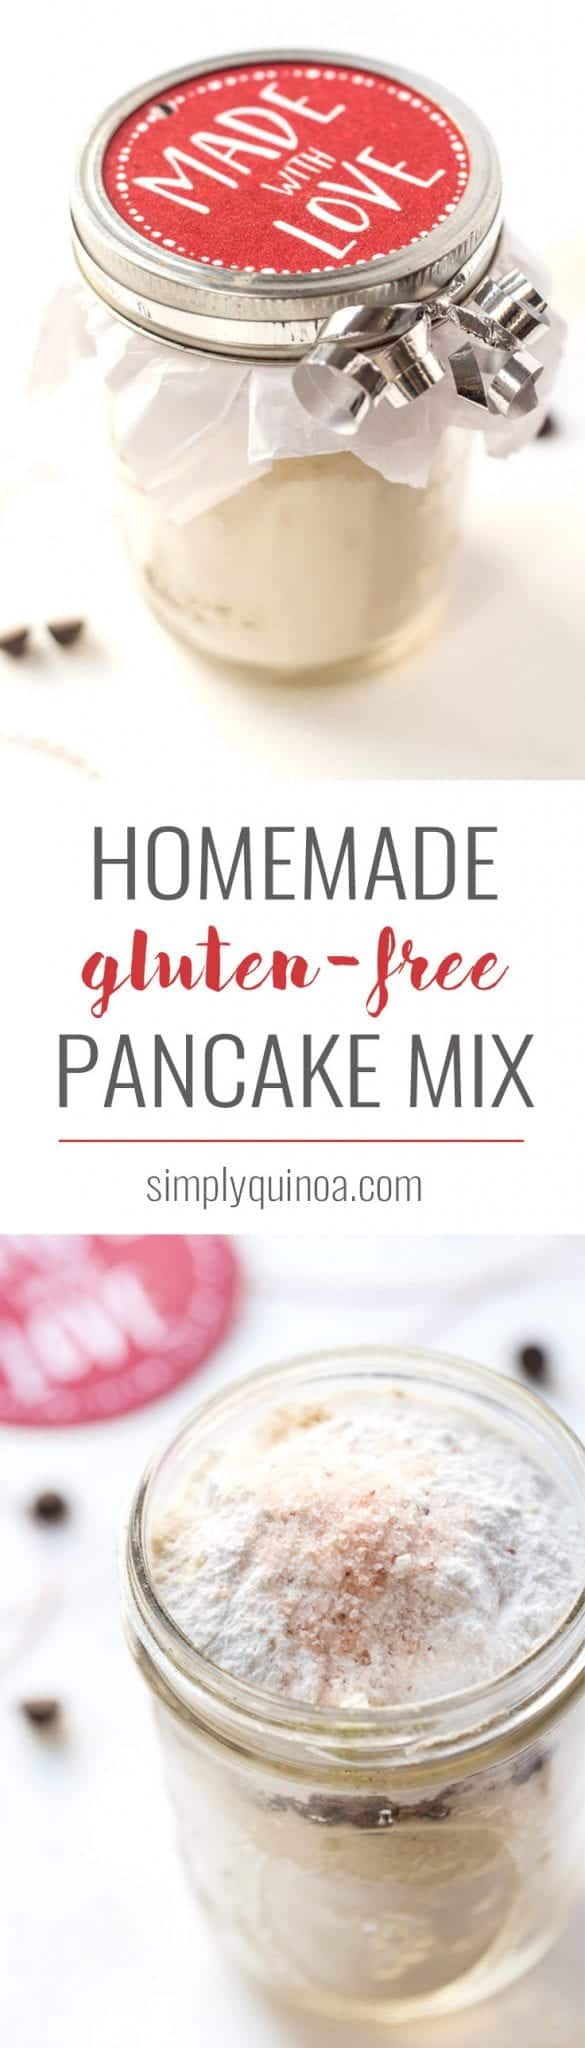 how to make HOMEMADE Gluten-Free Pancake Mix! Makes for a perfect holiday gift and one jar = one batch of pancakes!